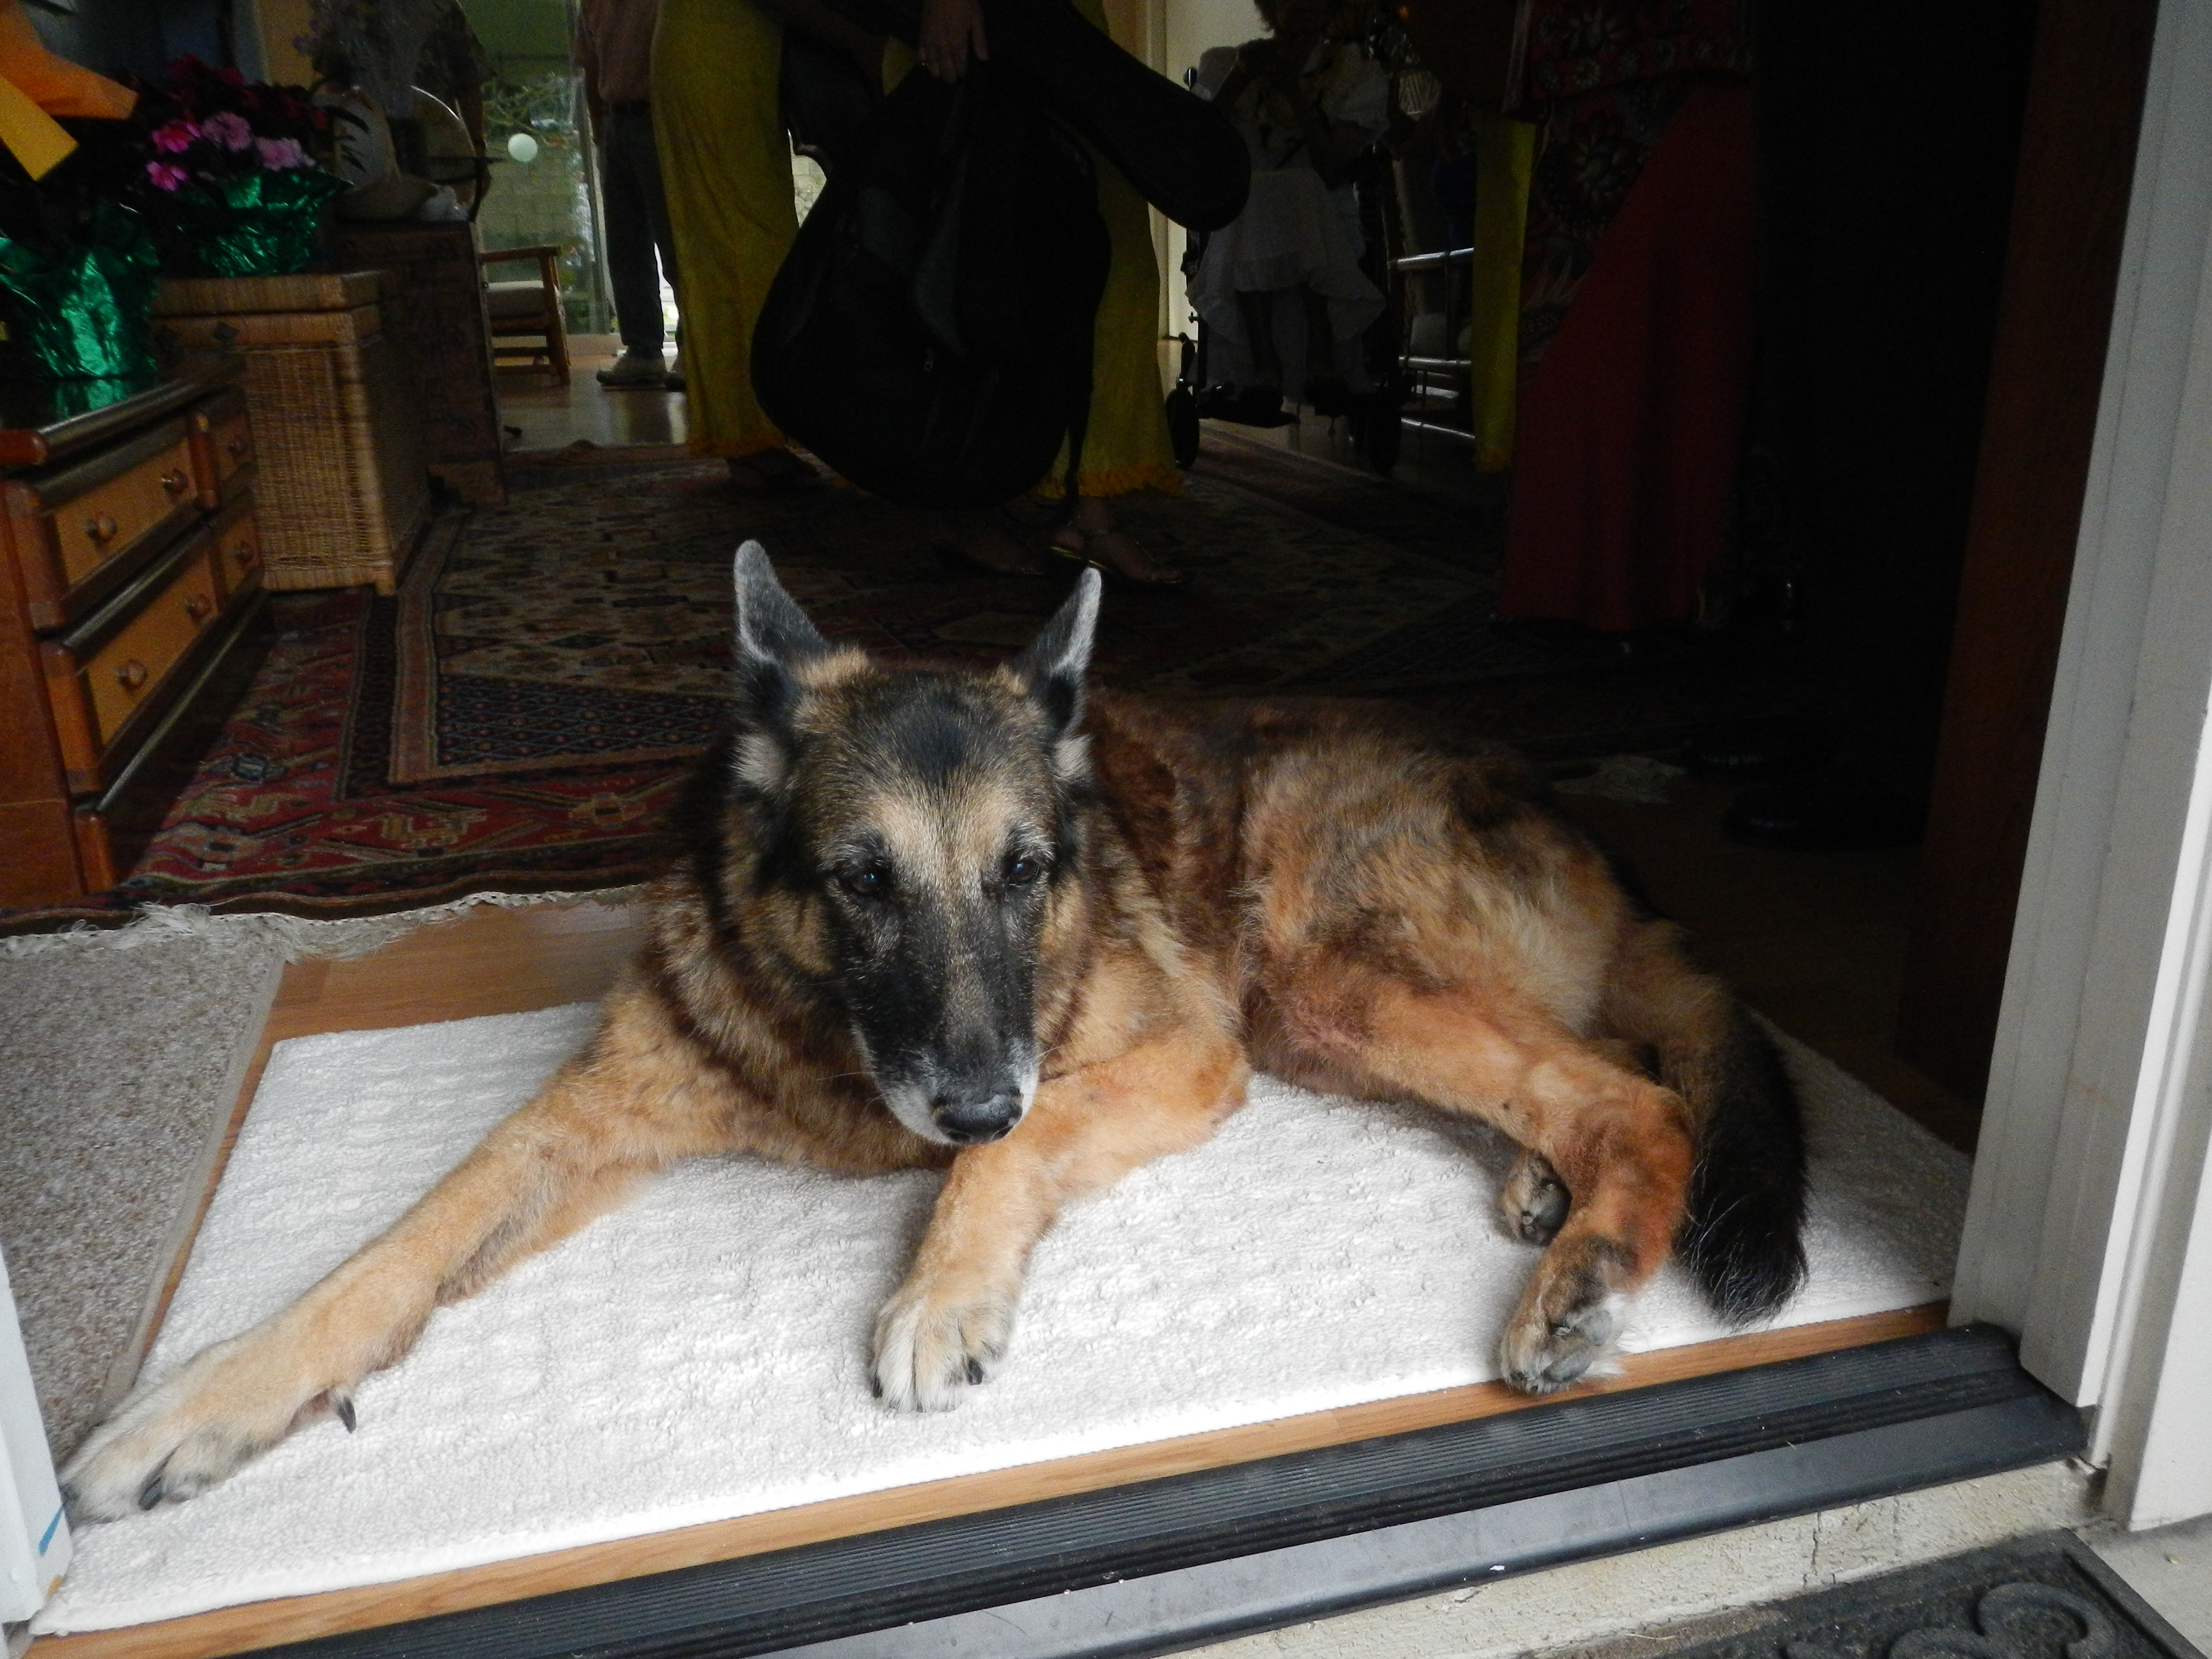 Our dog, Kona, waits at the front door, she knows the guests are about to arrive.